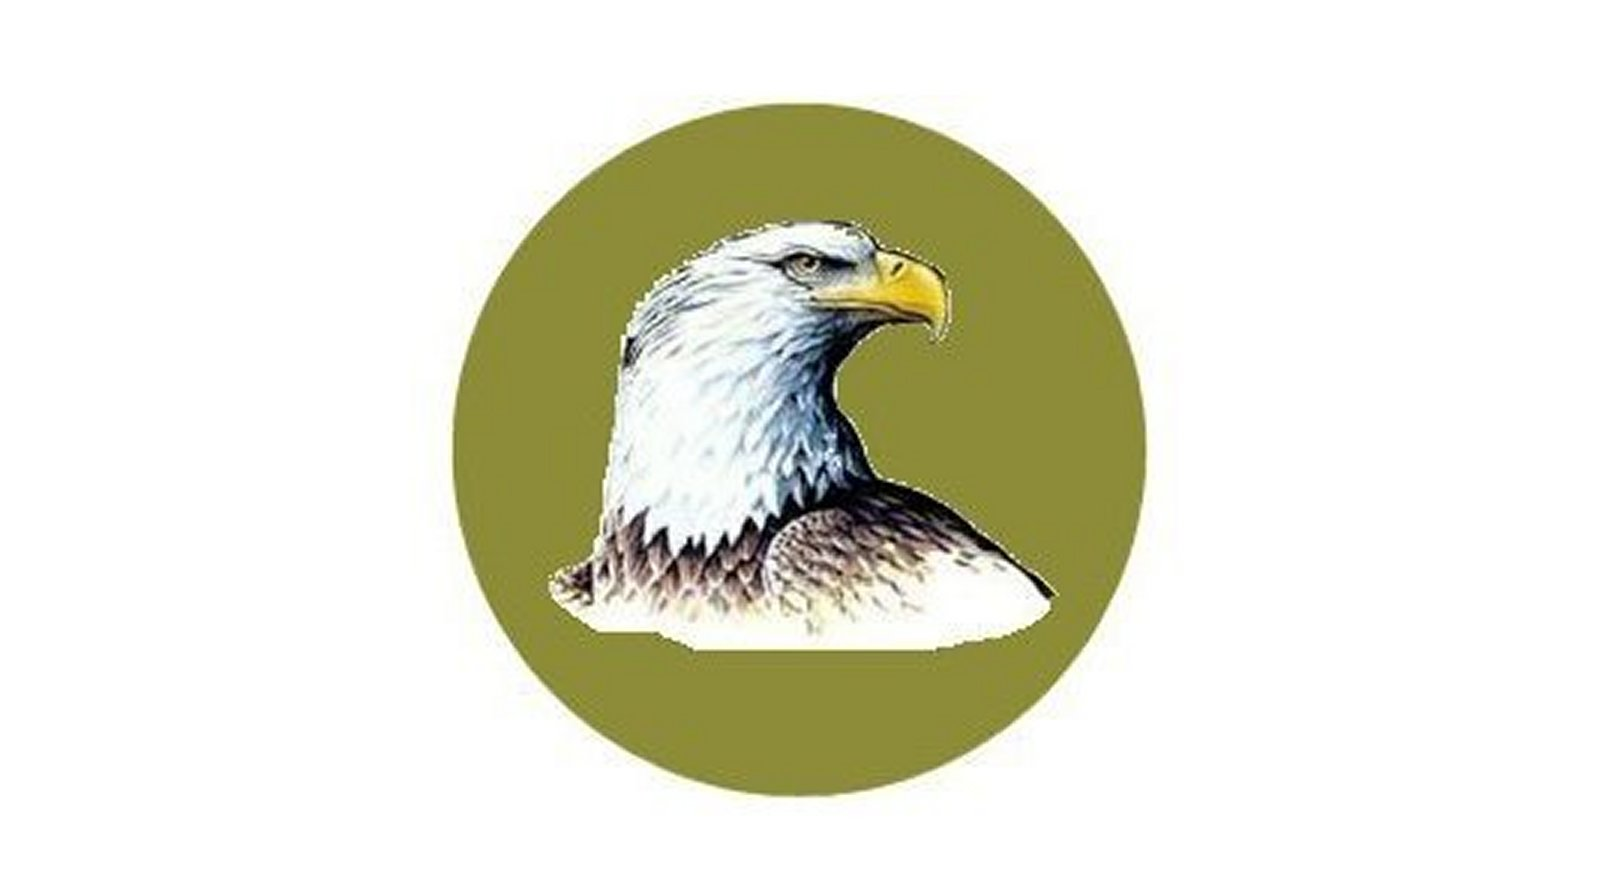 explore-eagle-icon.jpg